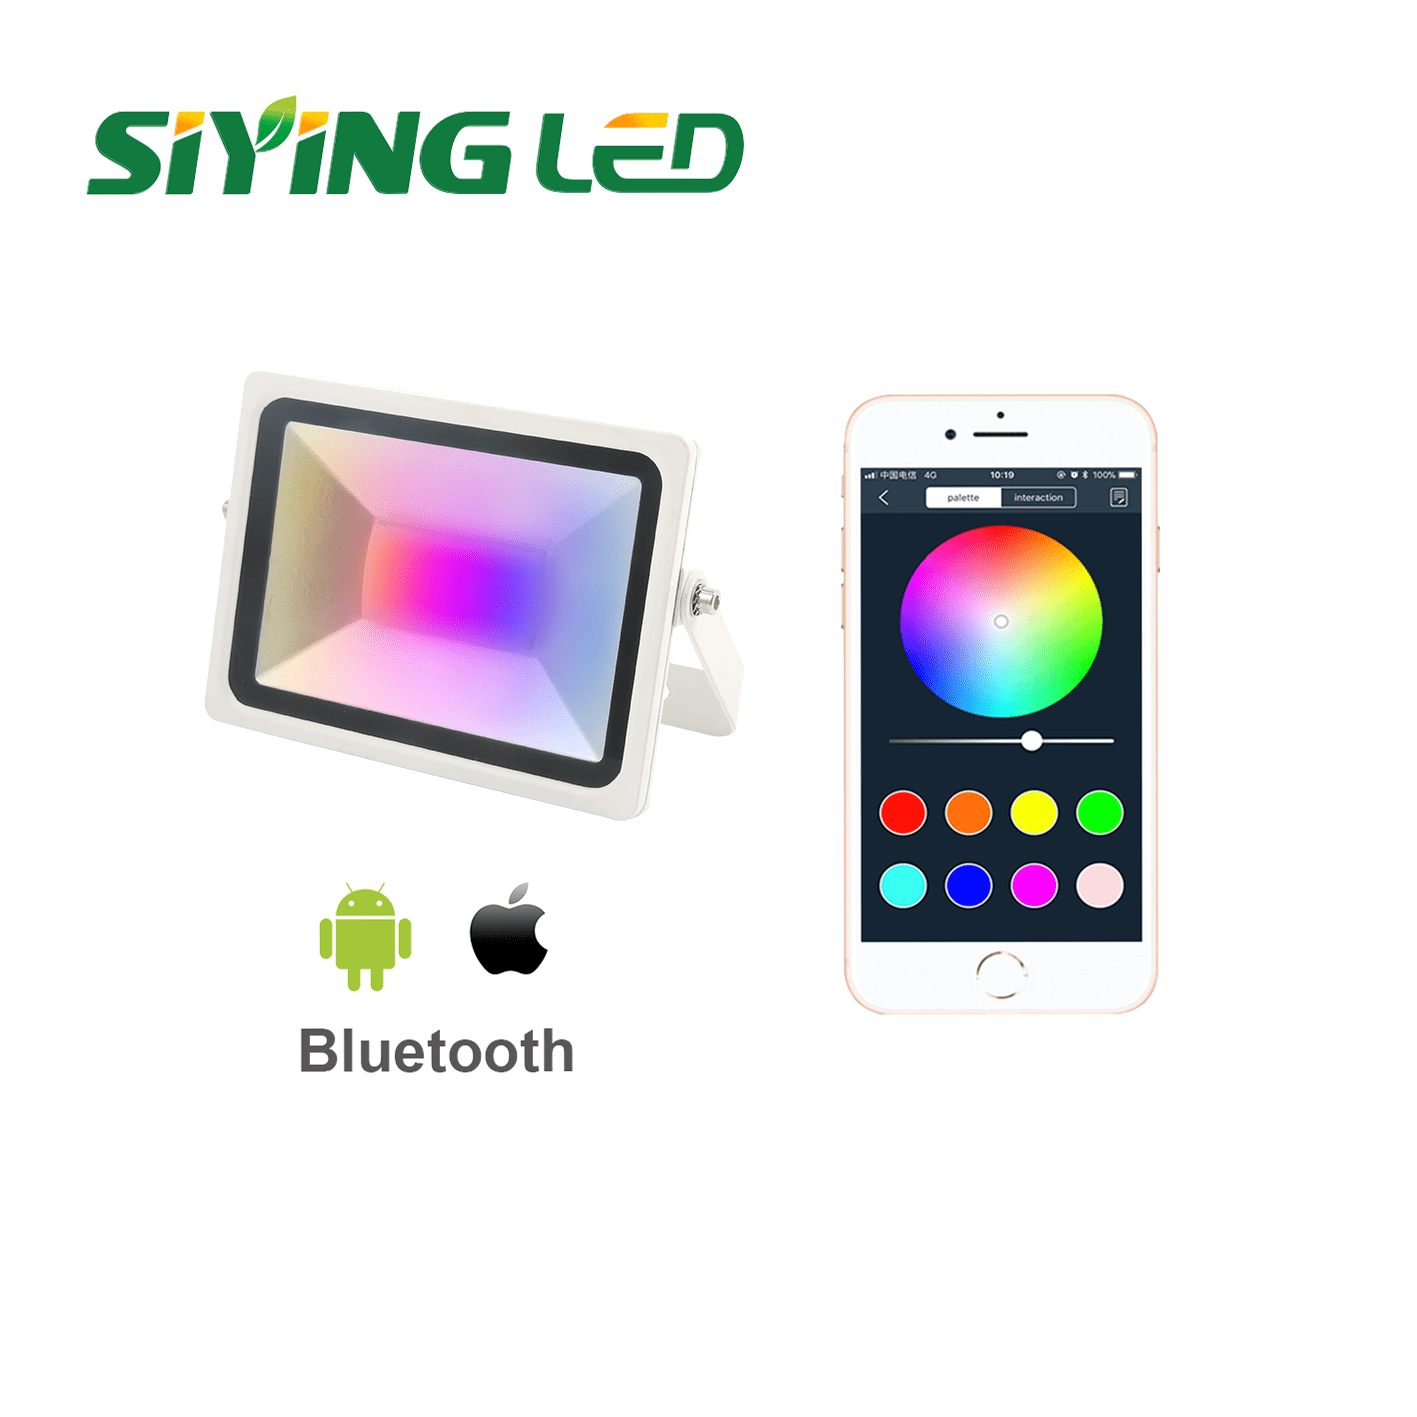 China Sheet Supplier Slim Led Floodlight -